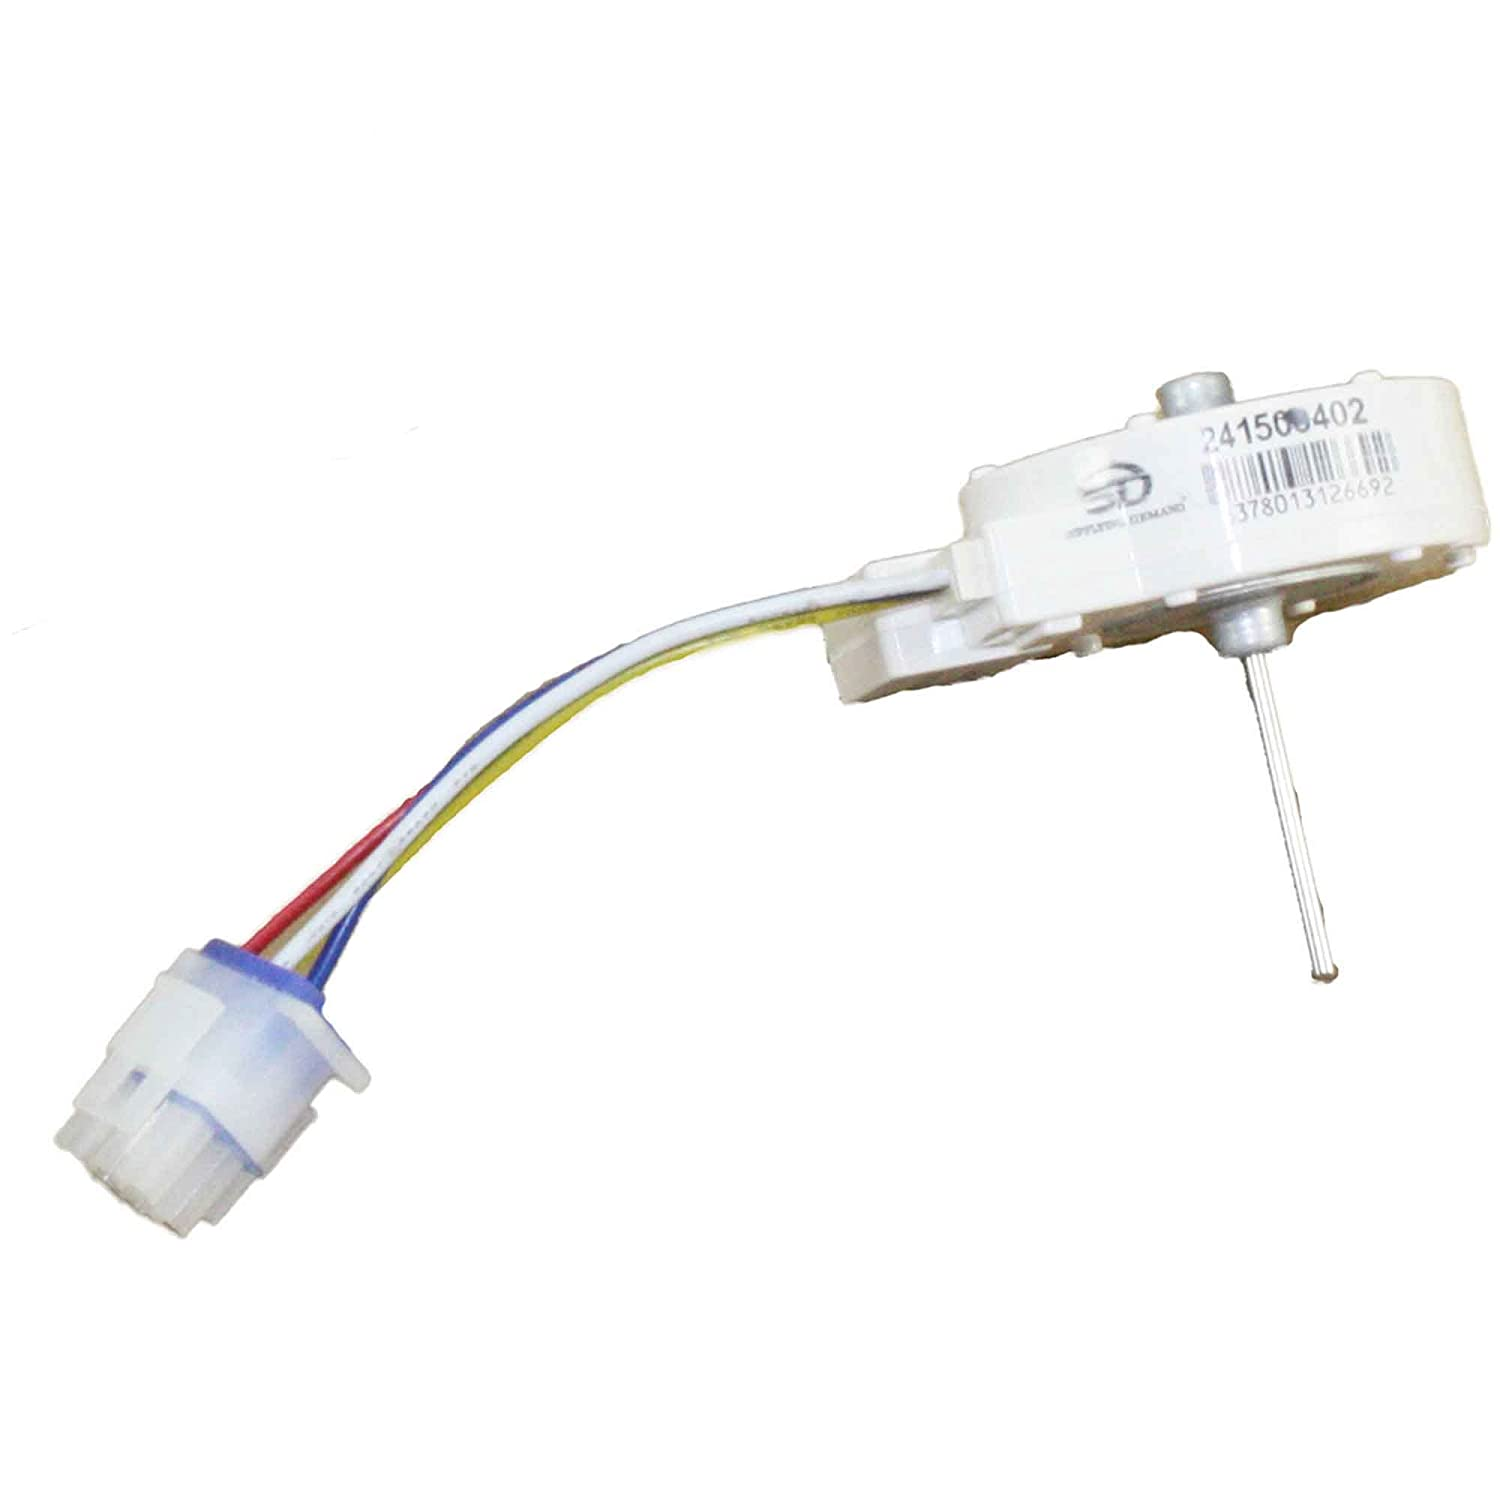 Supplying Demand 241509402 Refrigerator Evaporator Fan Motor For Frigidaire